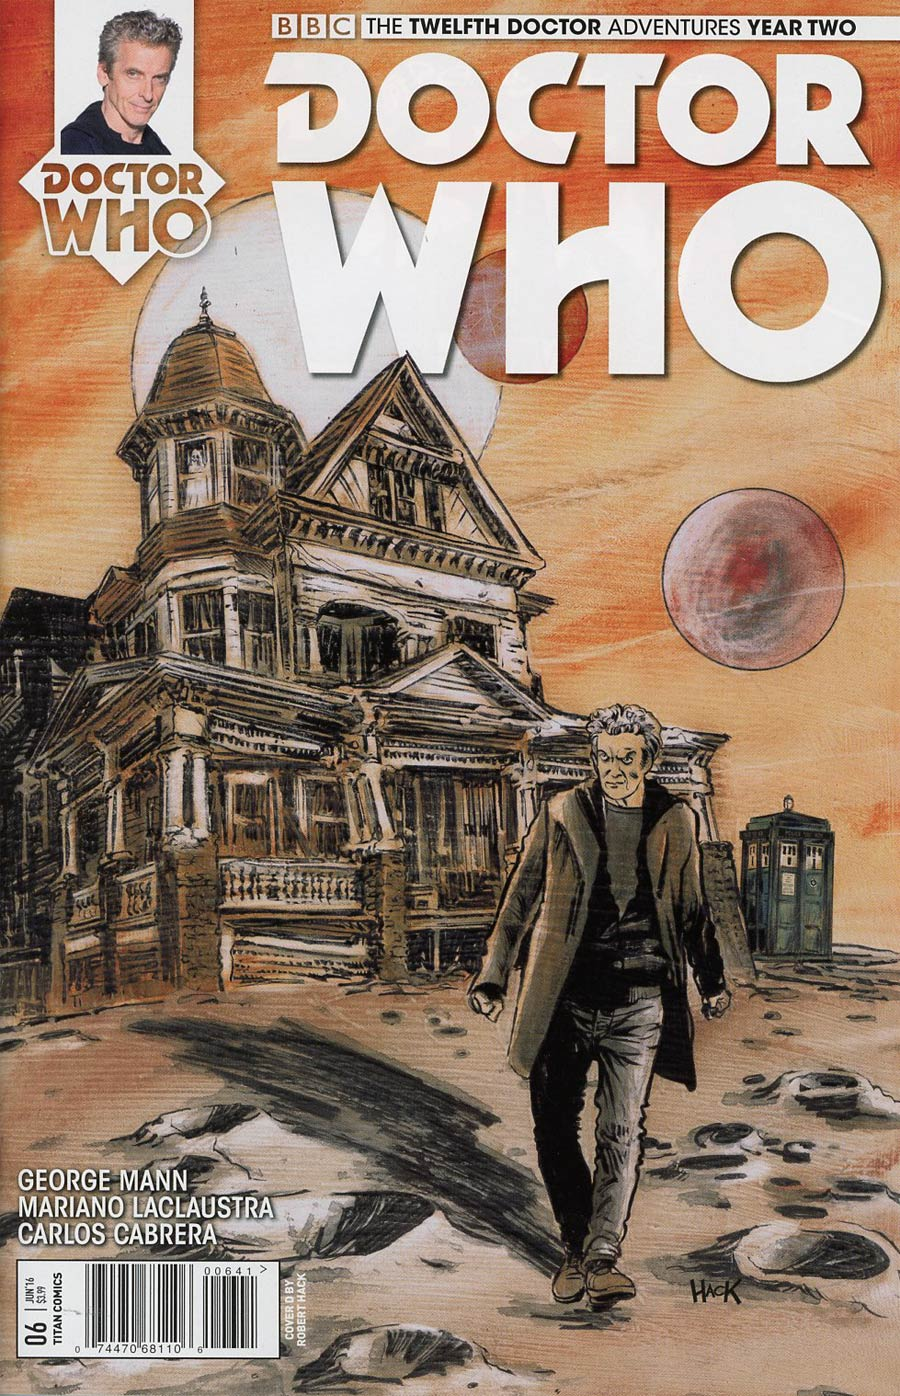 Doctor Who 12th Doctor Year Two #6 Cover D Variant Robert Hack Cover